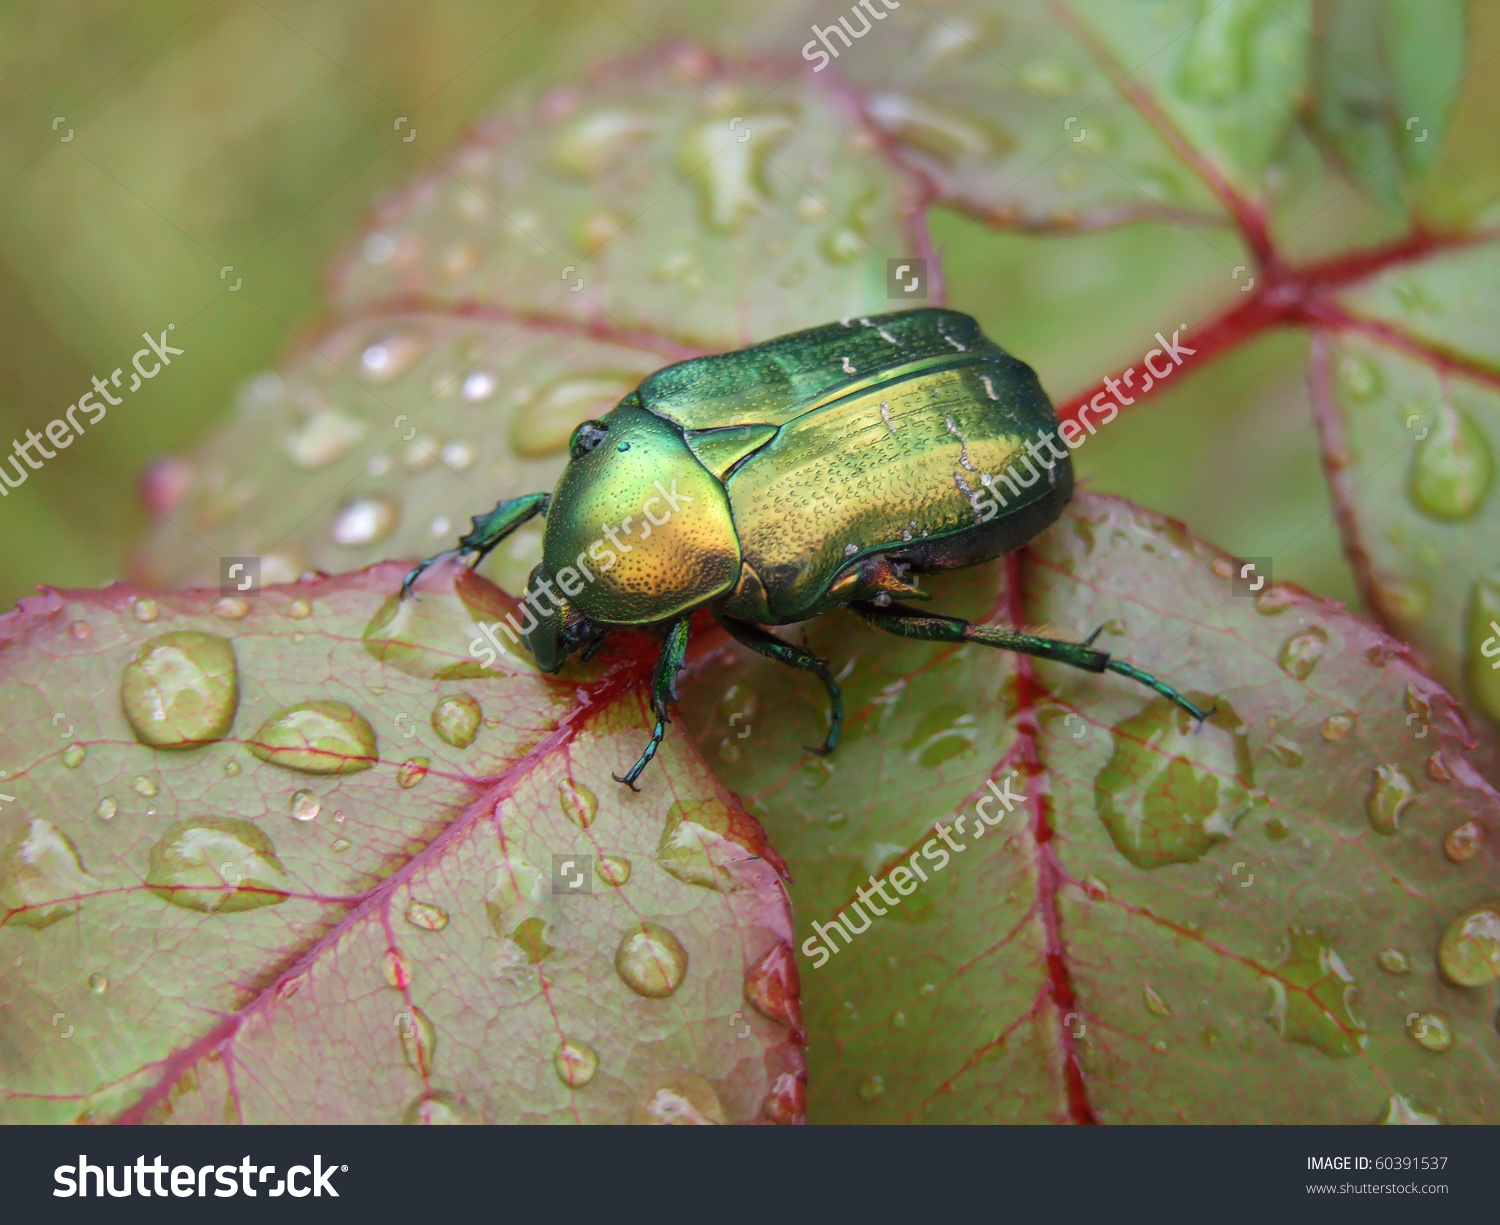 Rose Leaf With Raindrops And A Bug.